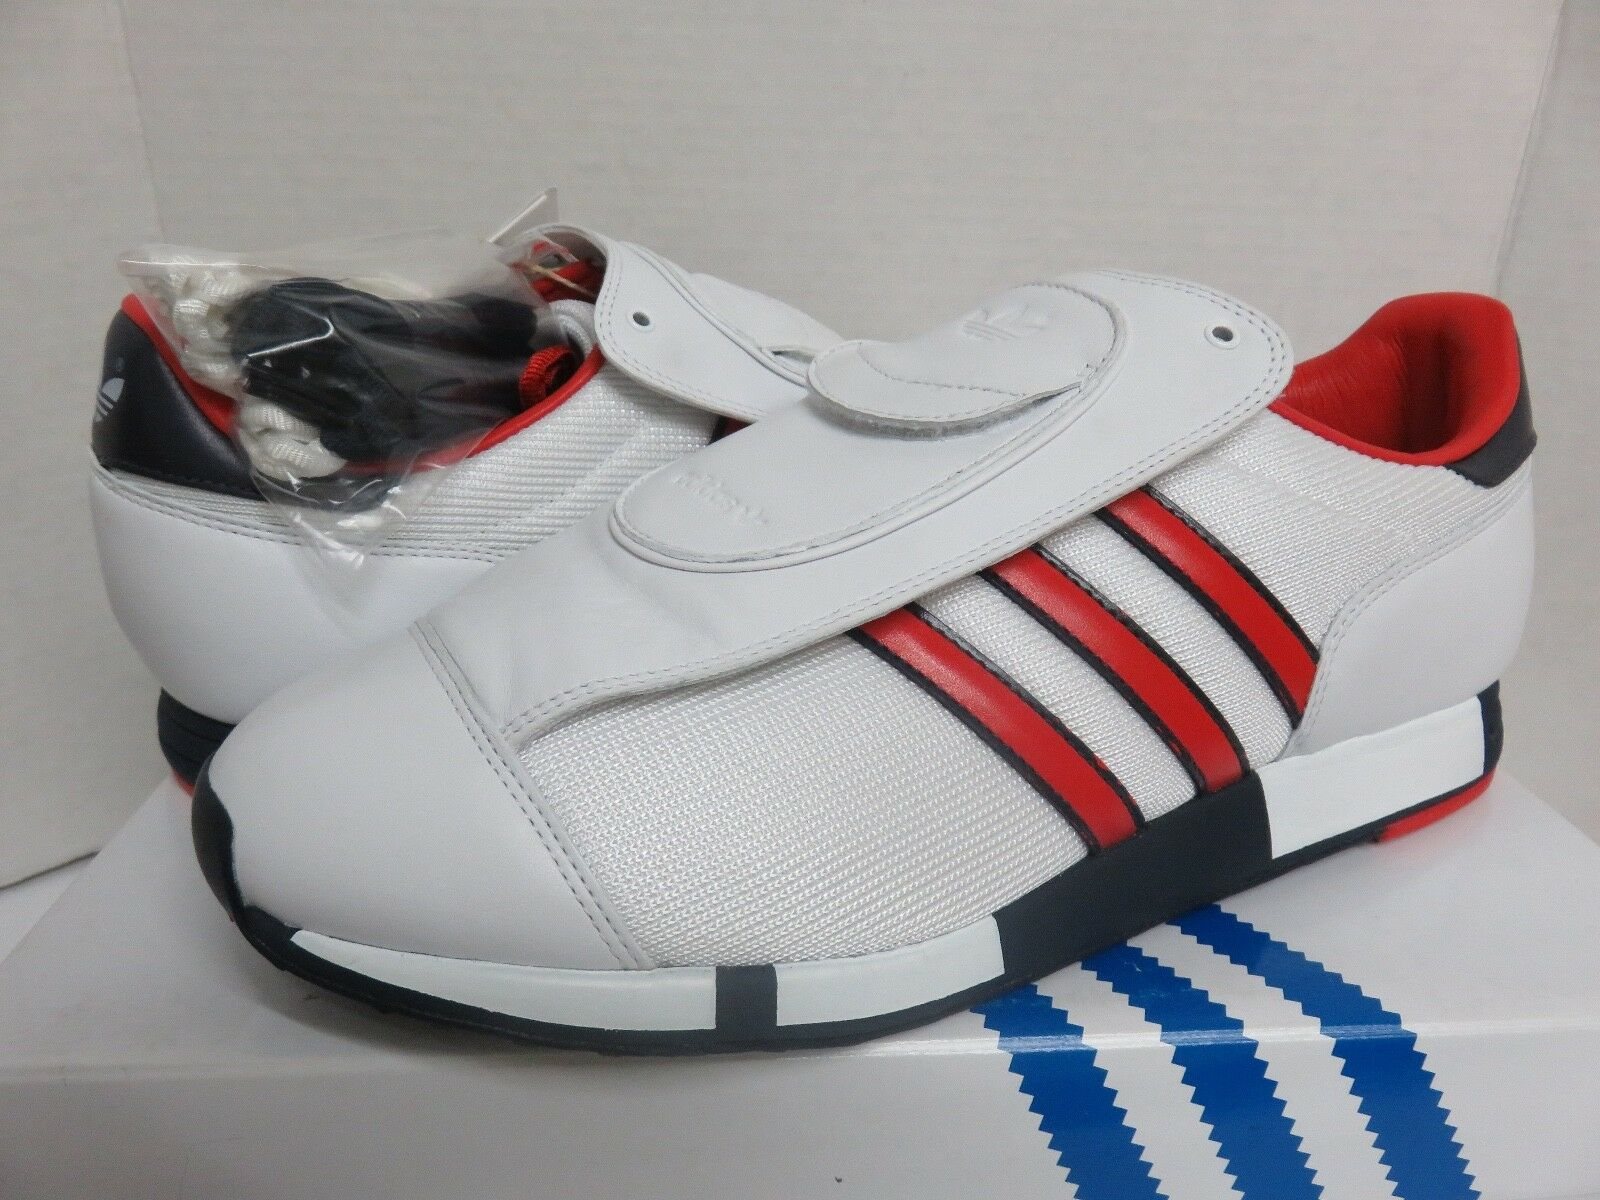 Adidas Pacer DB David Beckham G07176 White/Red White/Red G07176 Men's Size 10 Sneakers Shoes Rare bffe5d